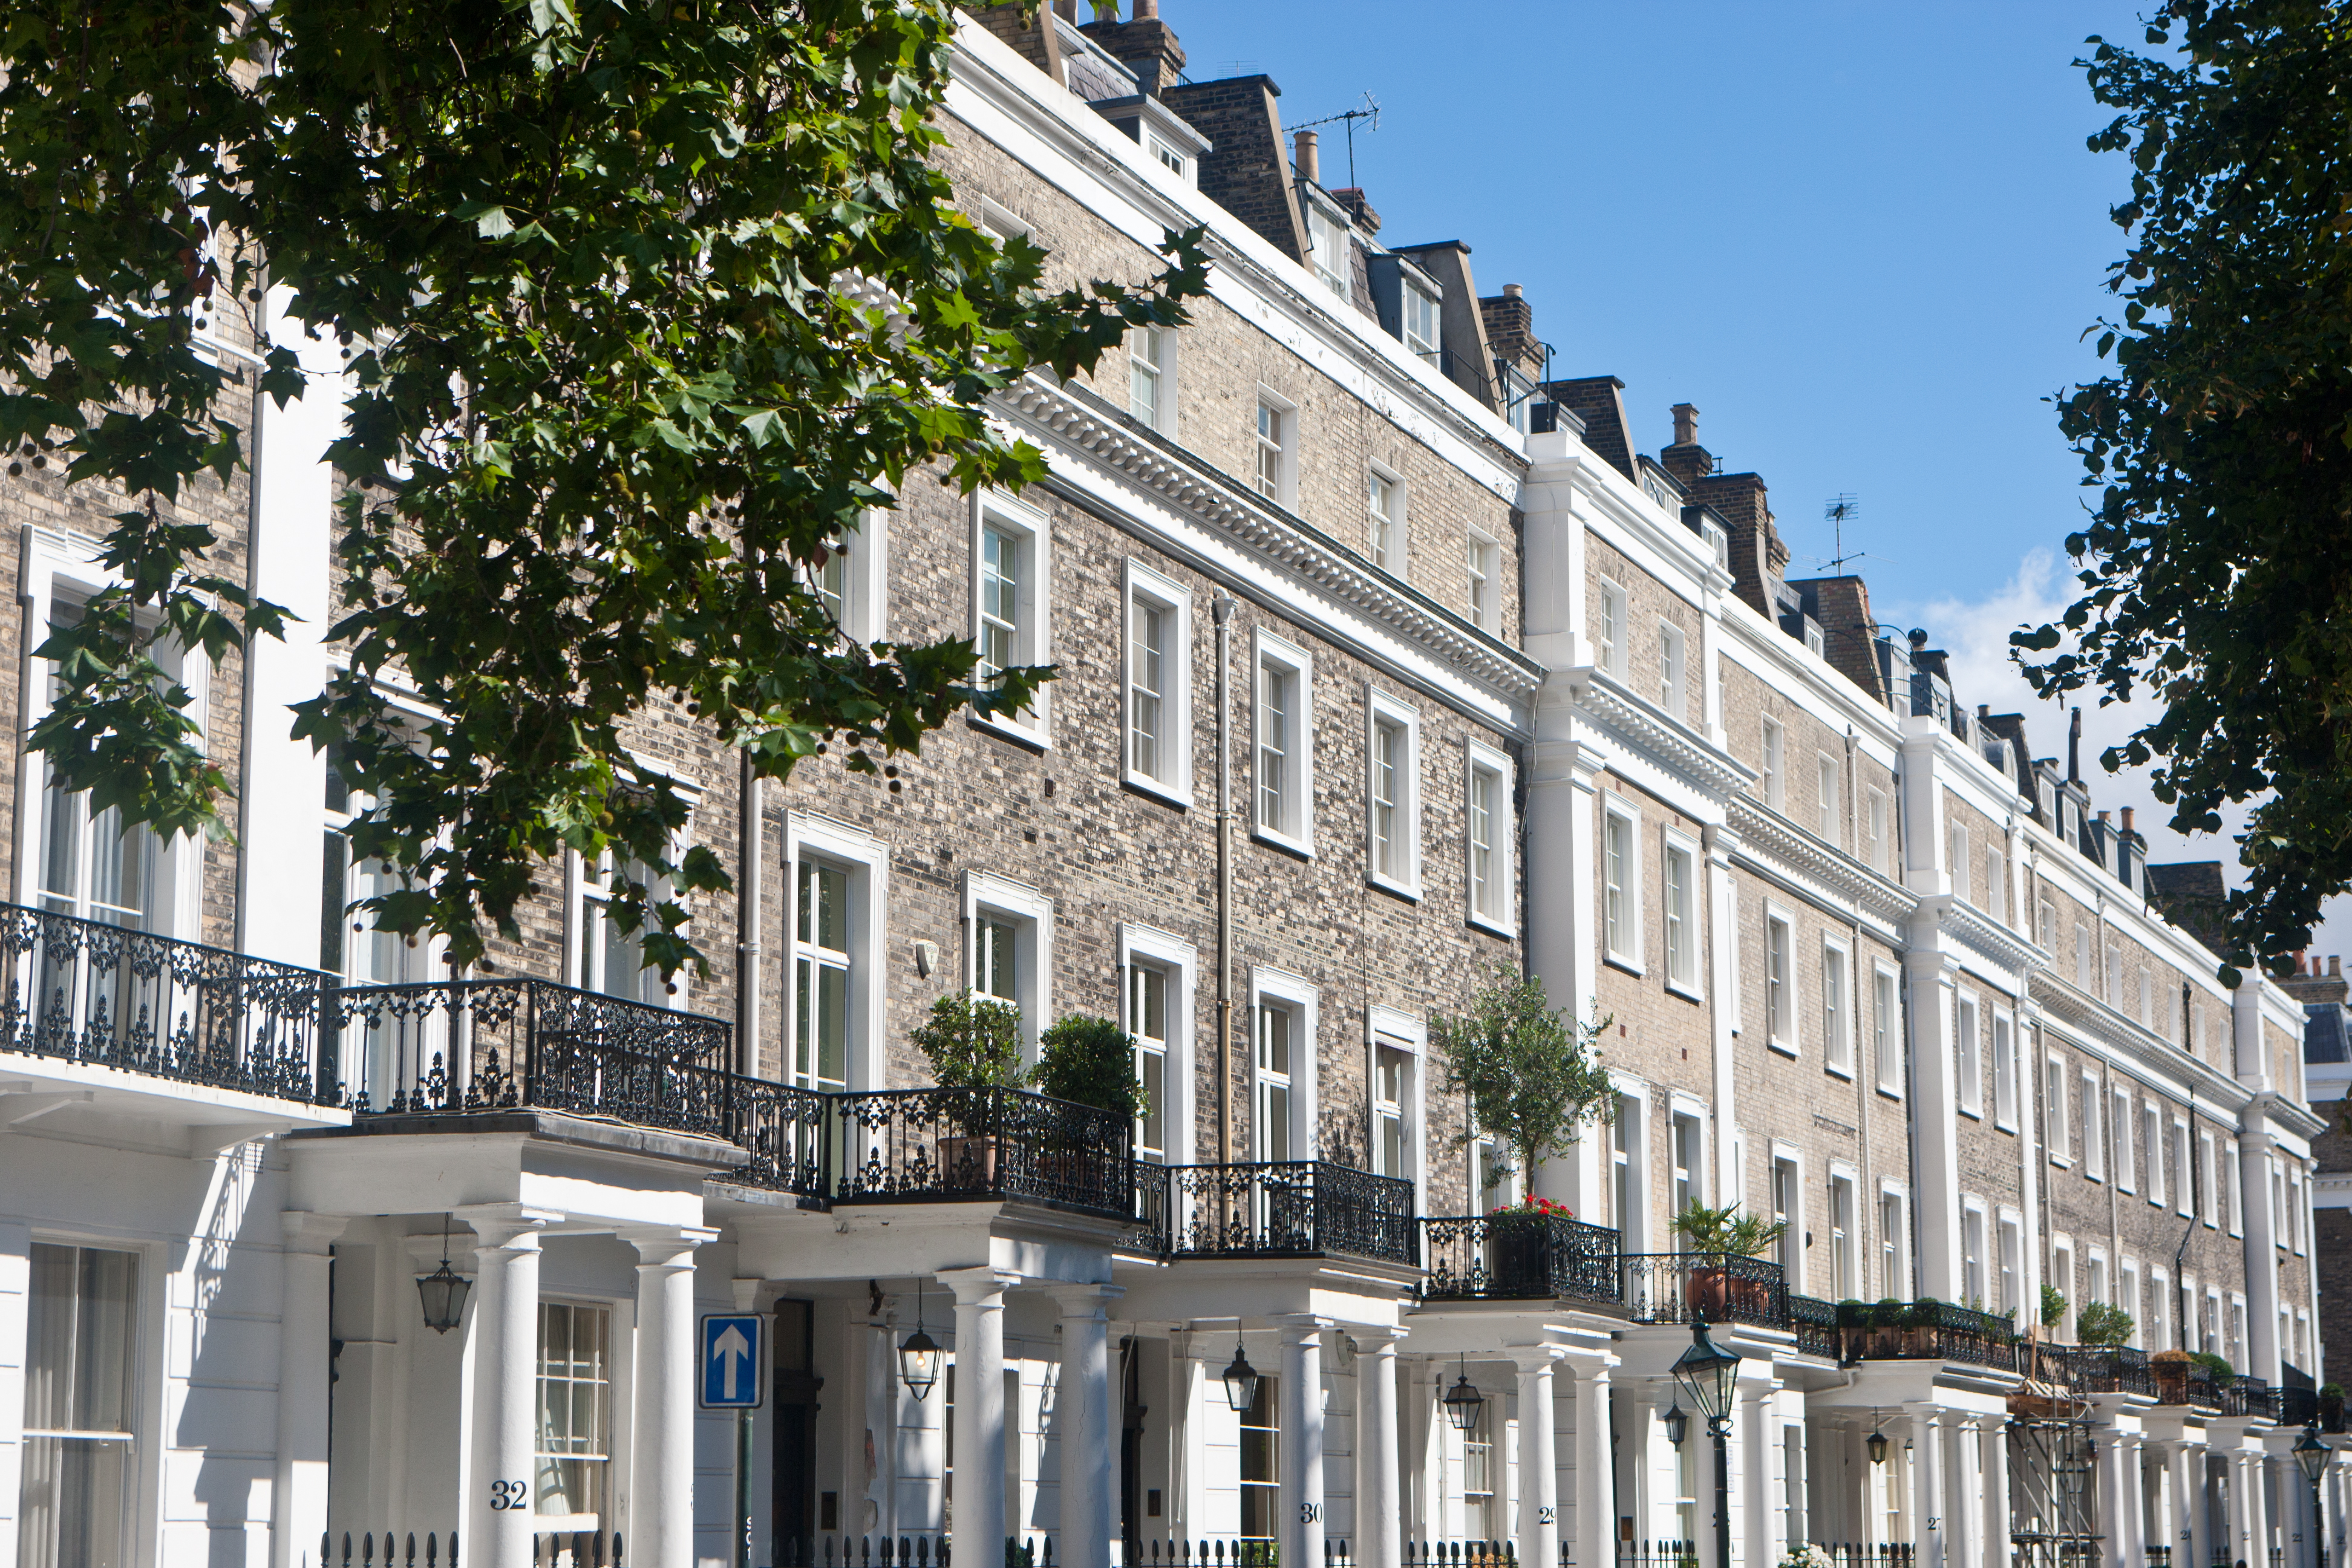 Opinion: reform Stamp Duty (Image: Shutterstock)